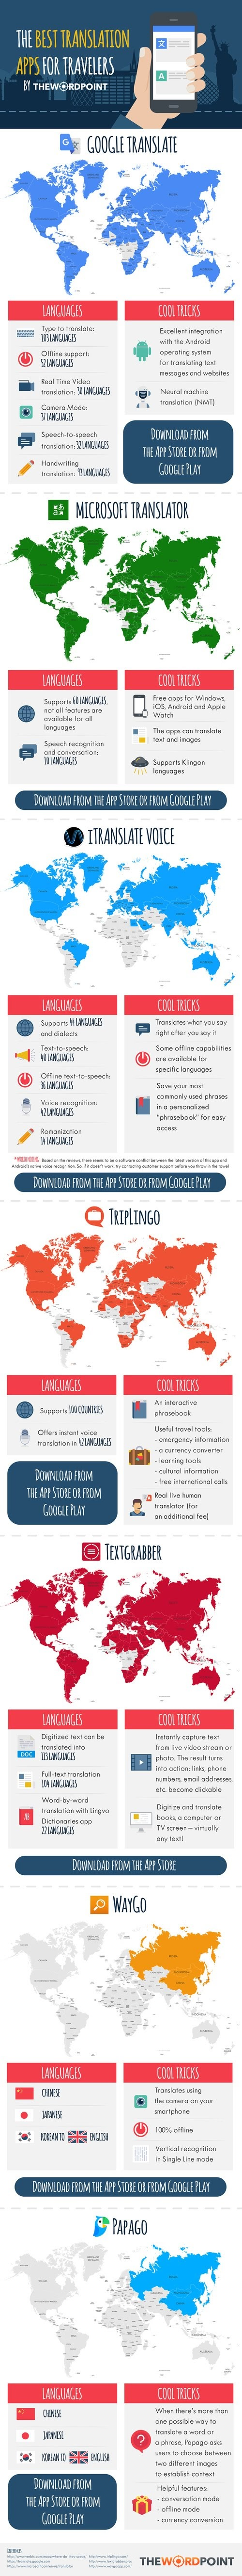 The Best Translation Apps for Travelers #Infographic